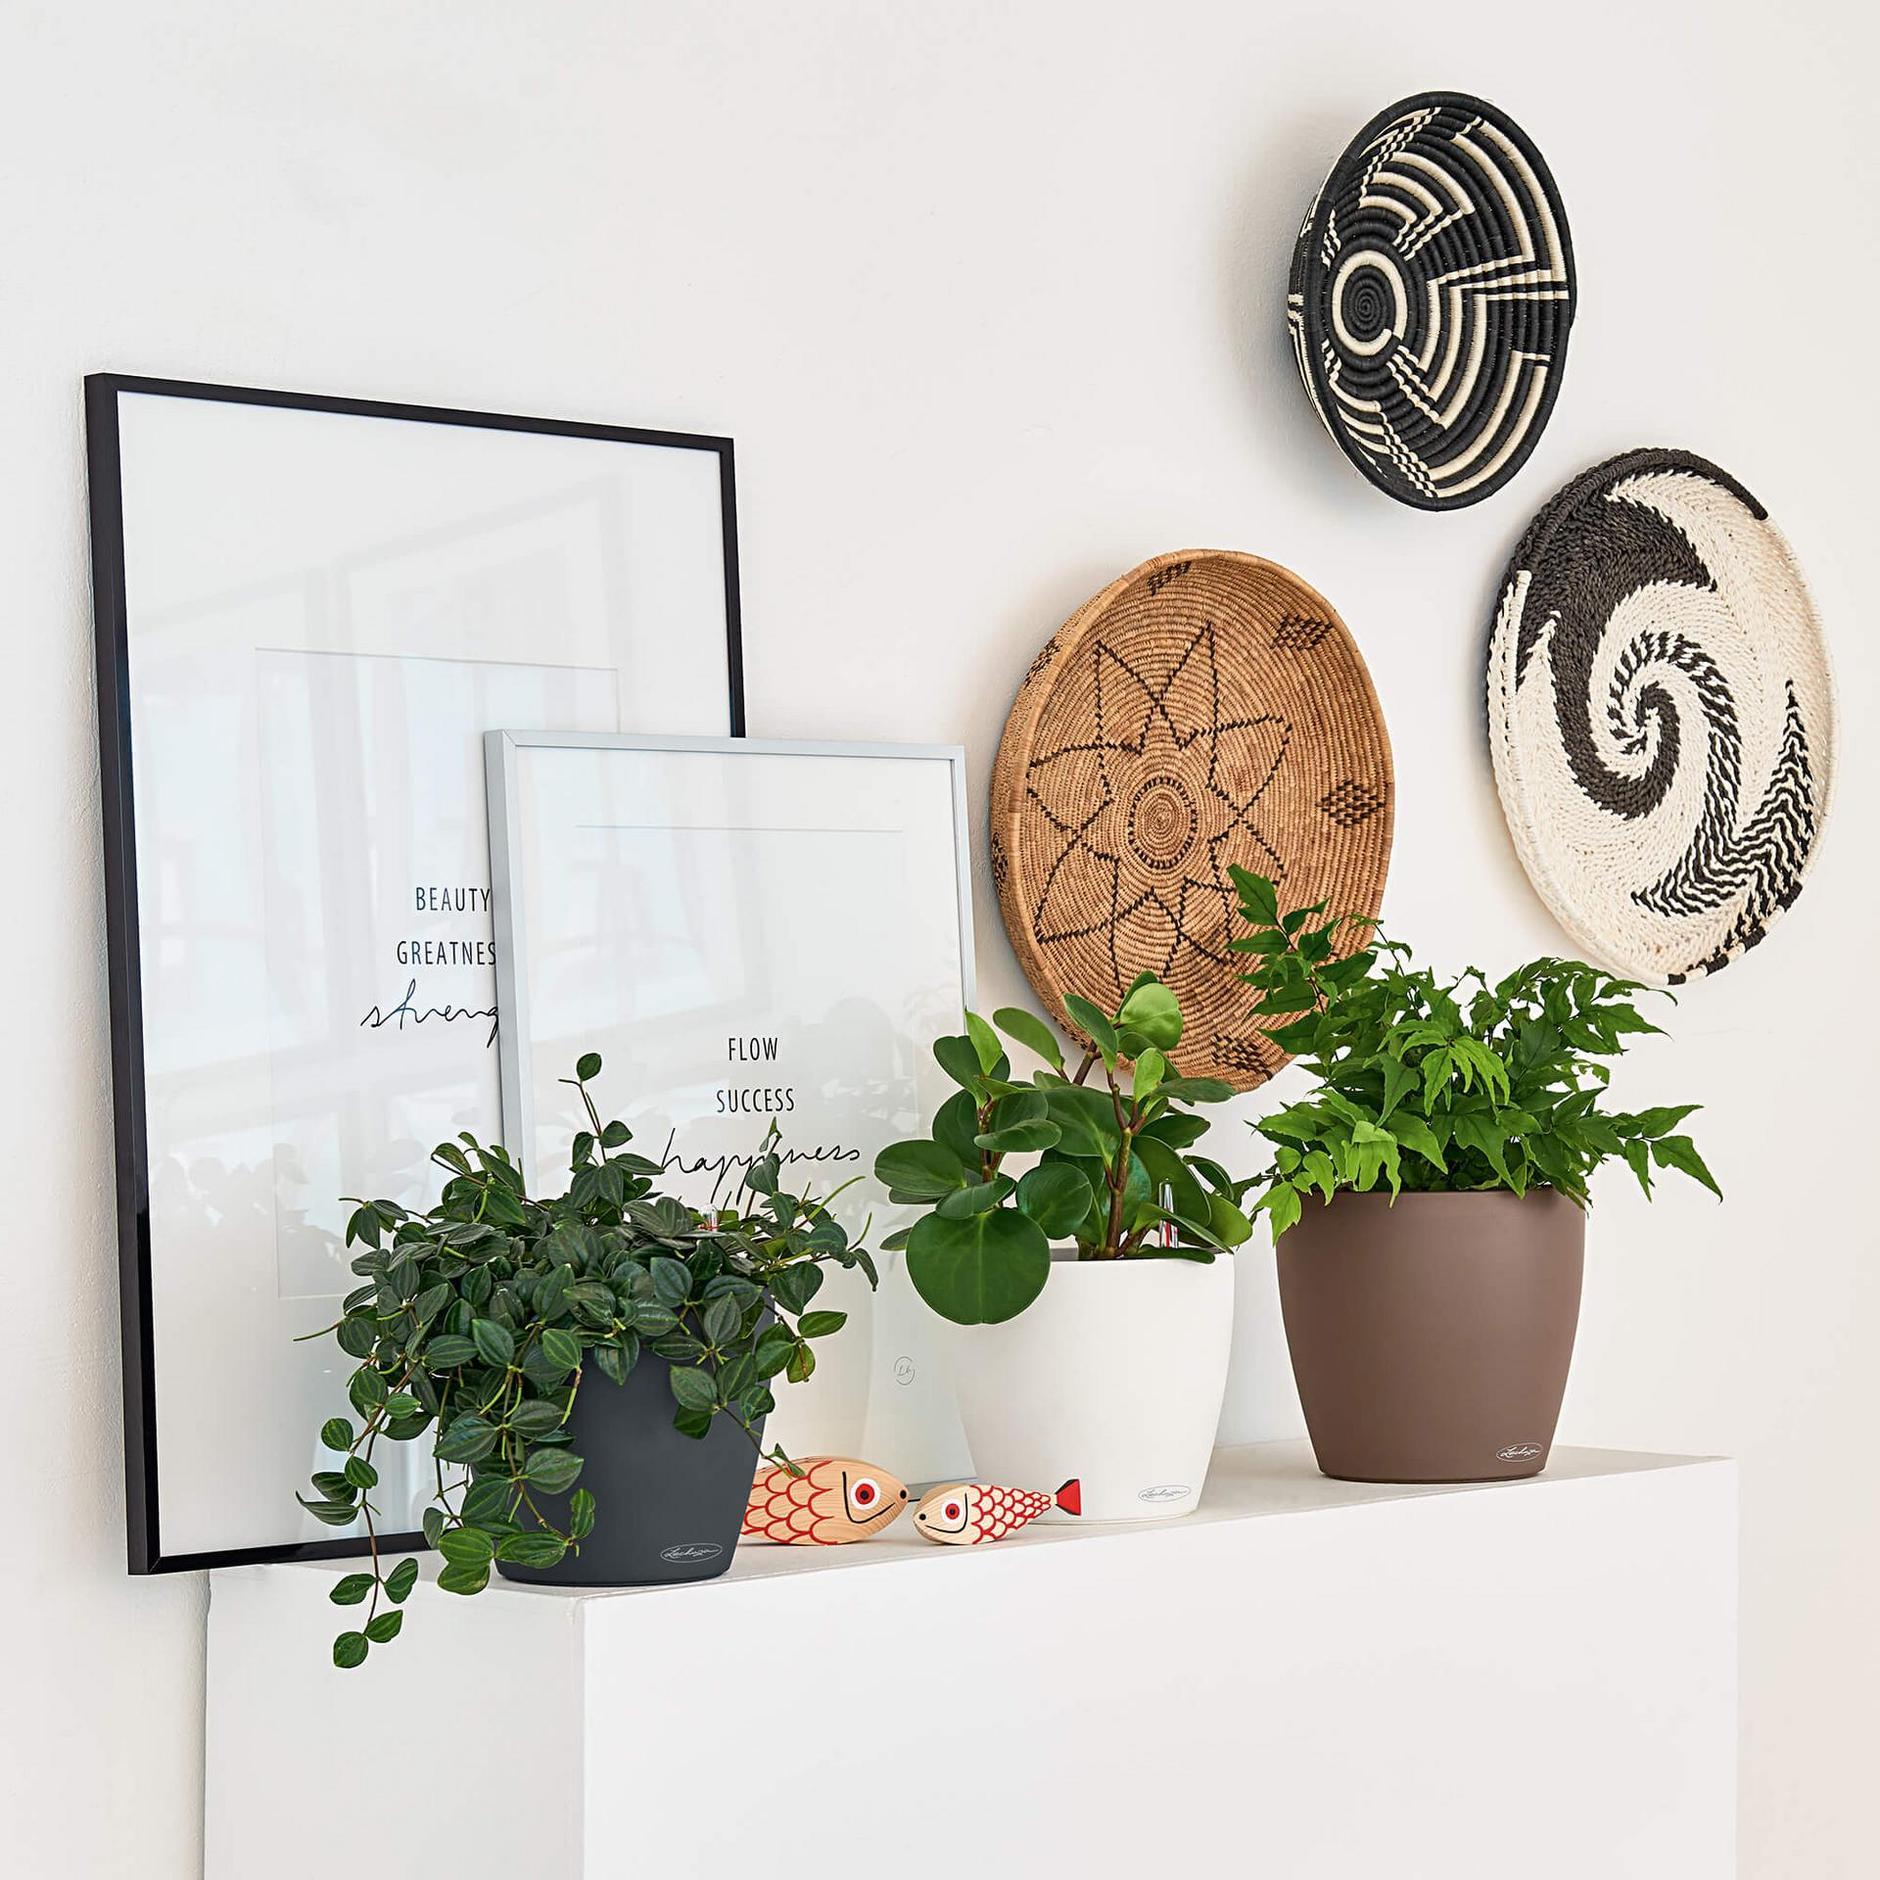 Fresh minimalist European decor with plates and plants in pots